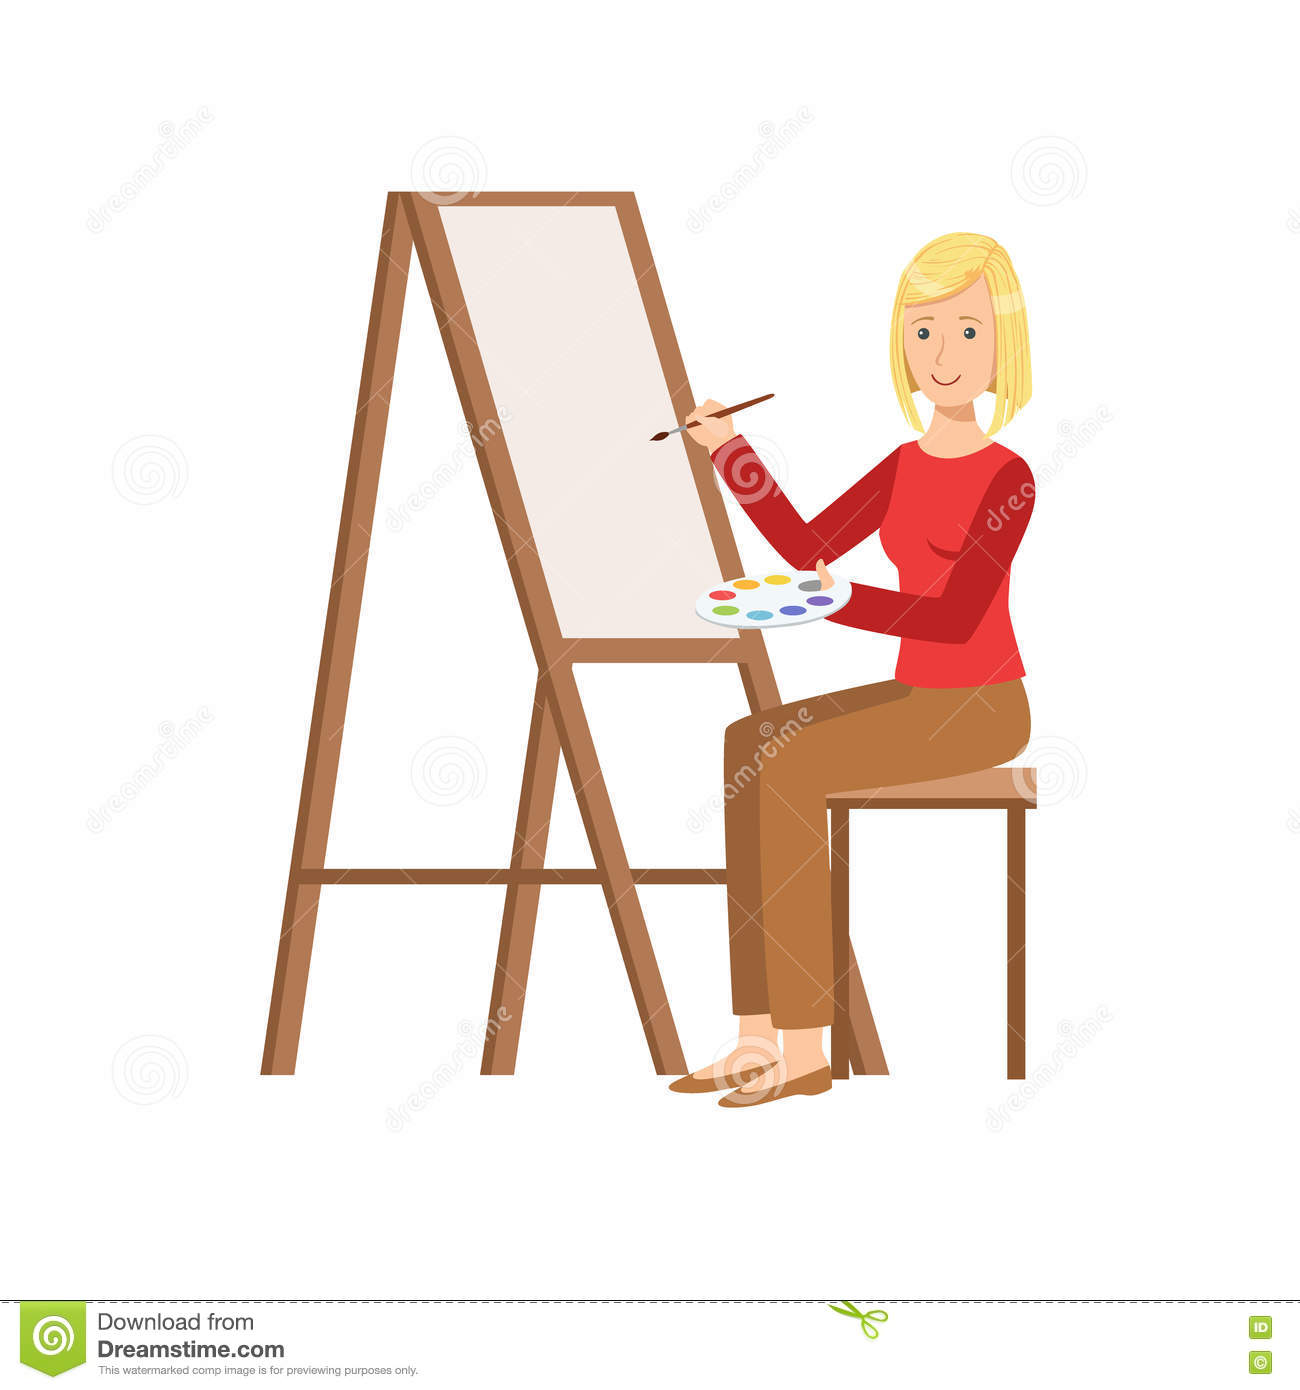 Girl Painting On Canvas, Creative Person Illustration